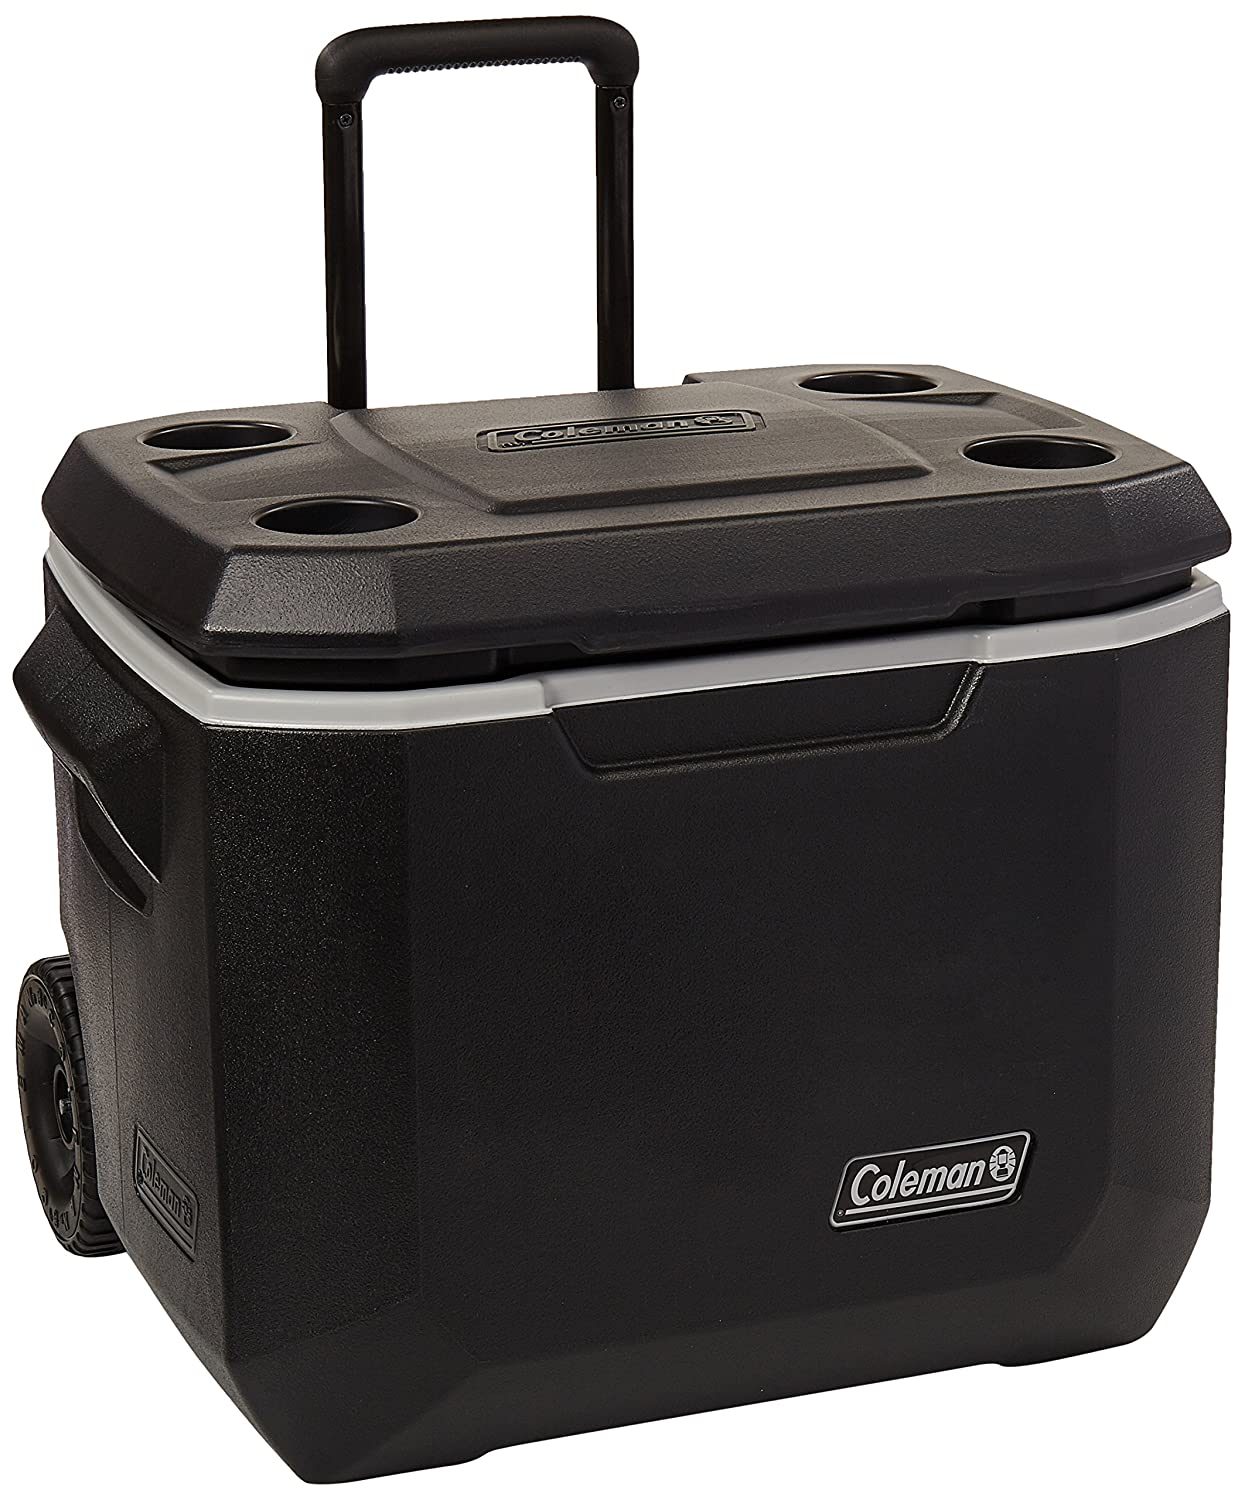 Best Coleman 50-Quart Wheeled Cooler